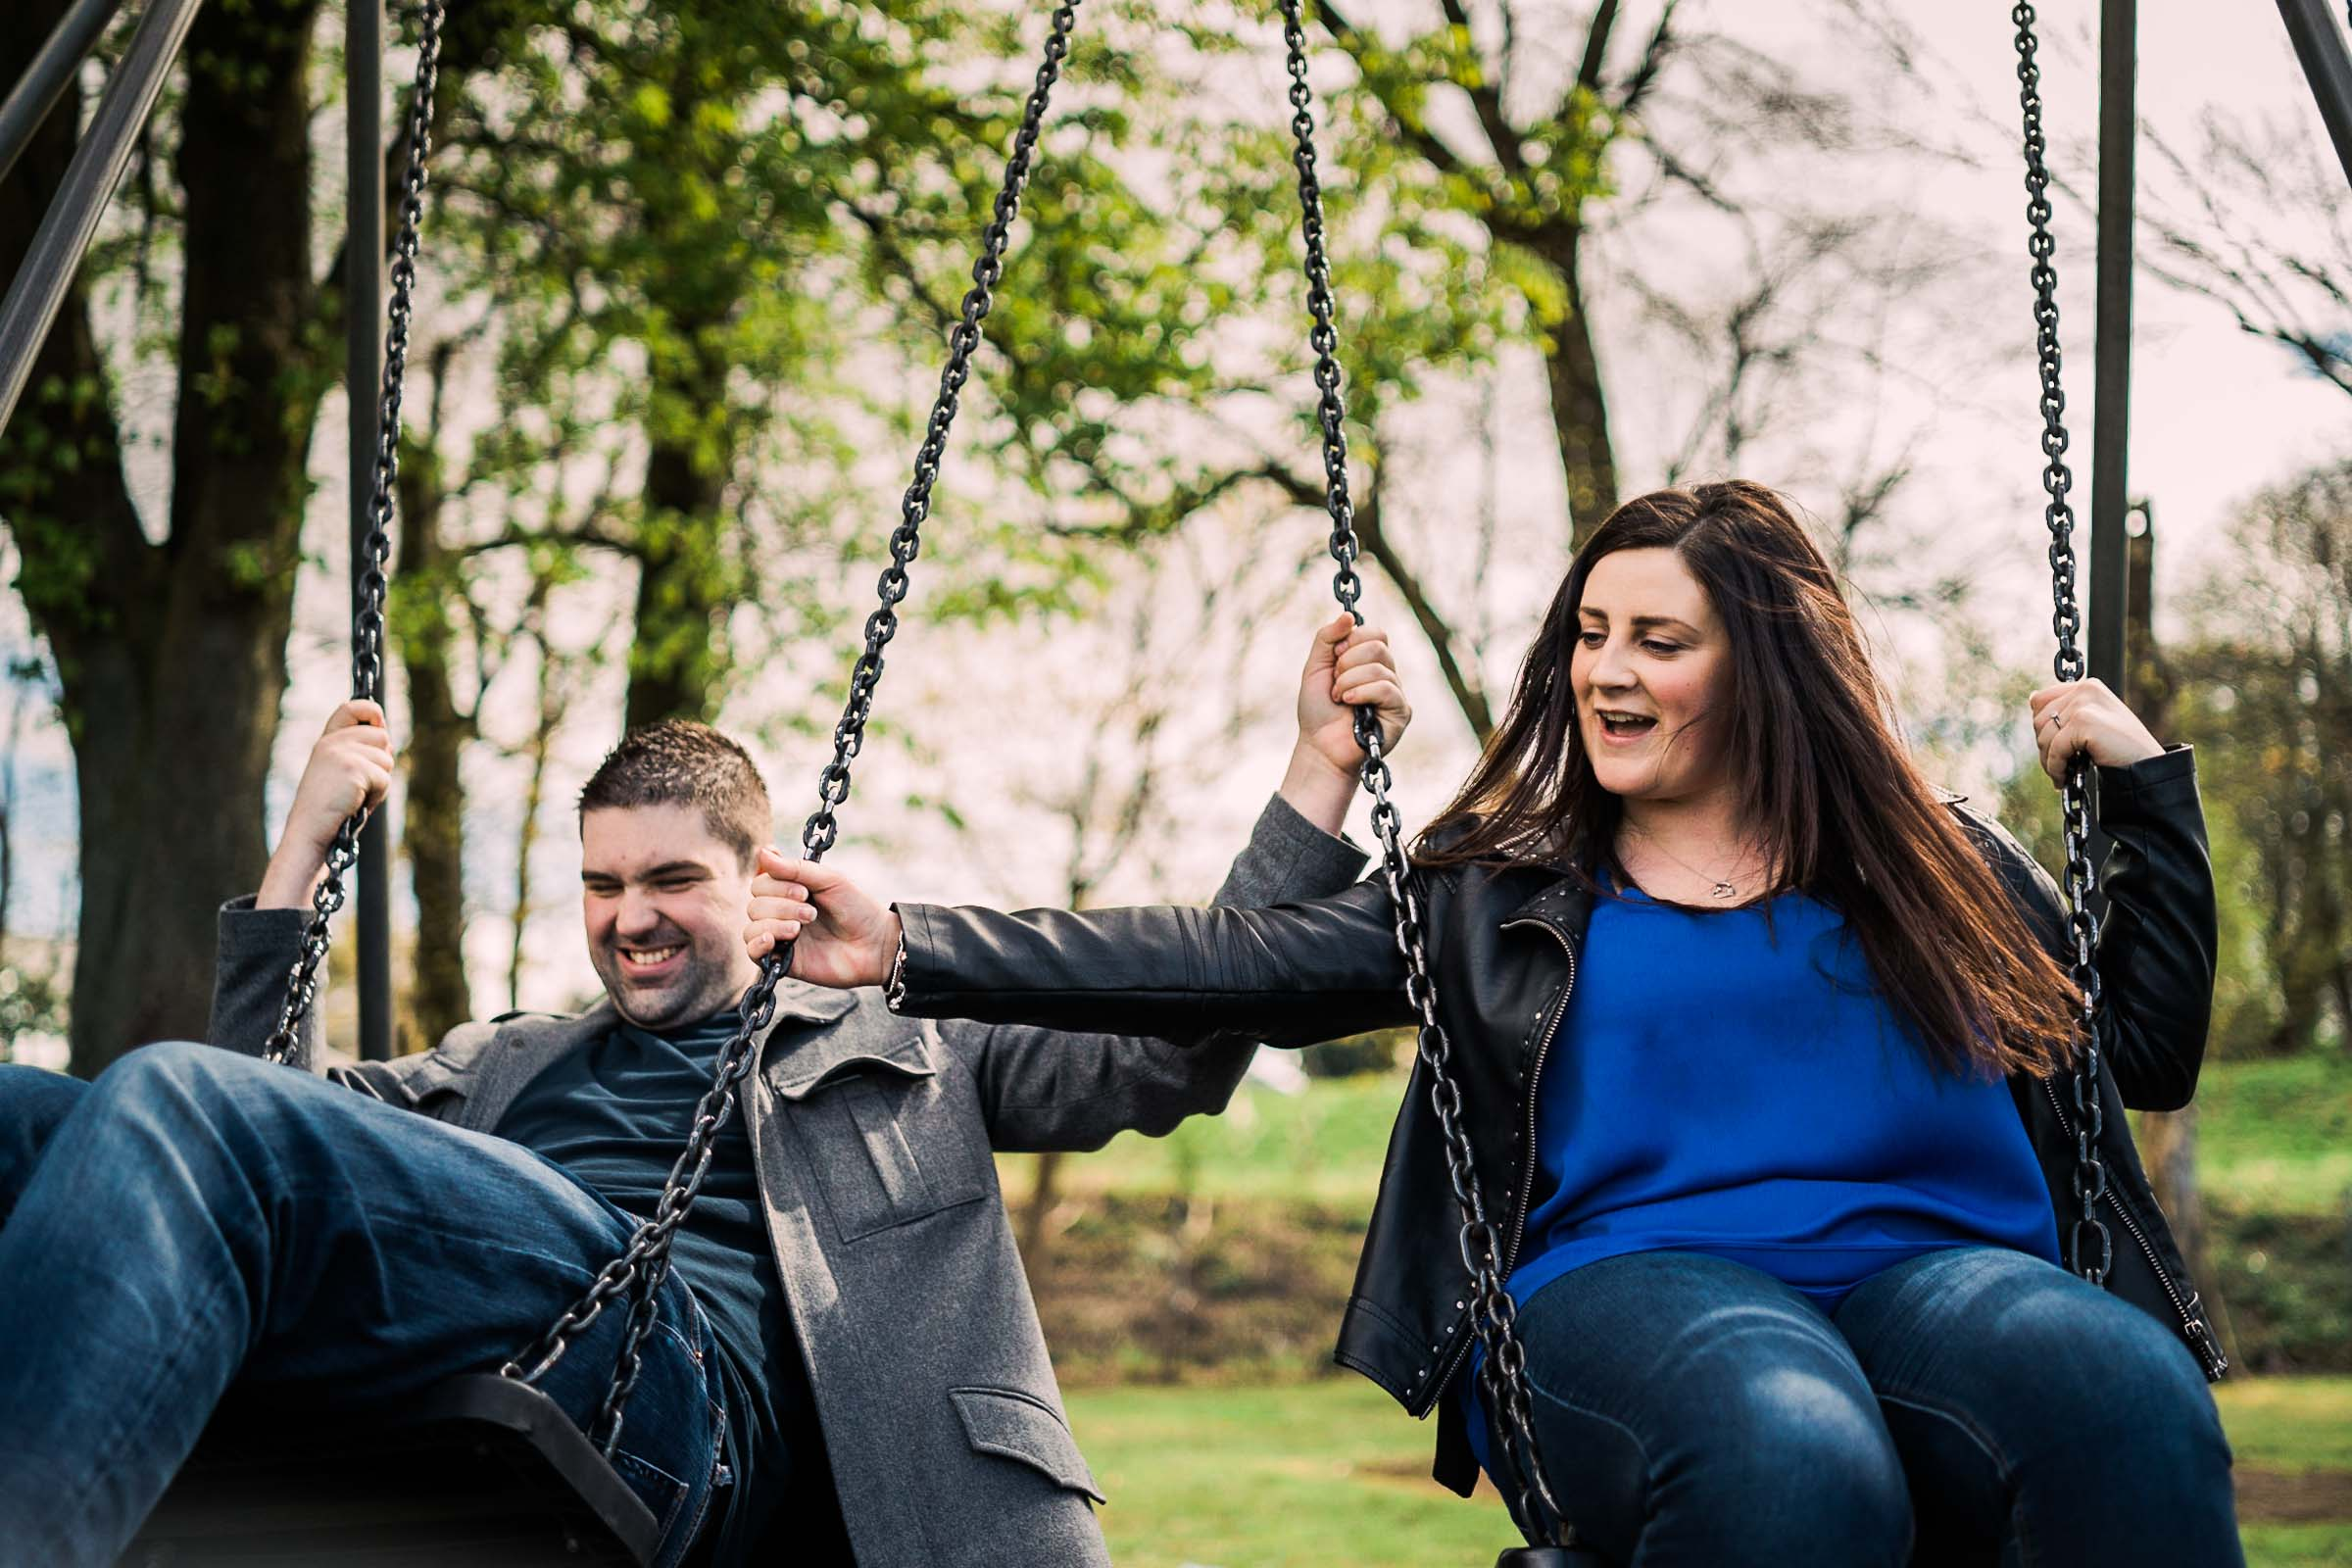 scottish-engagement-photography-elopement-dearlyphotography (42 of 45).jpg